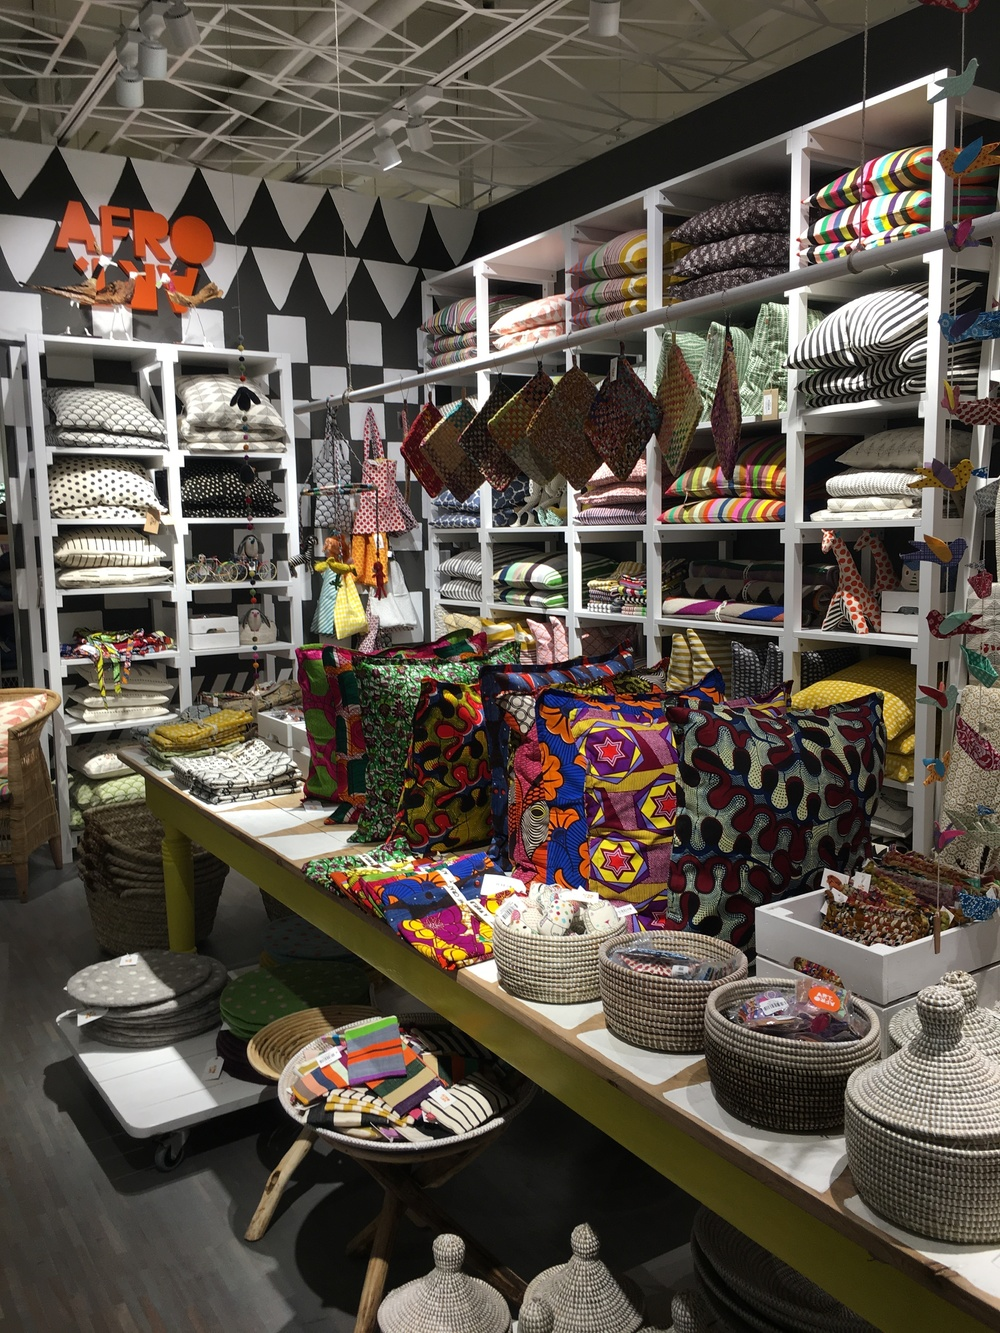 Homeware brand Afro art at Swedish department store, Athlens.